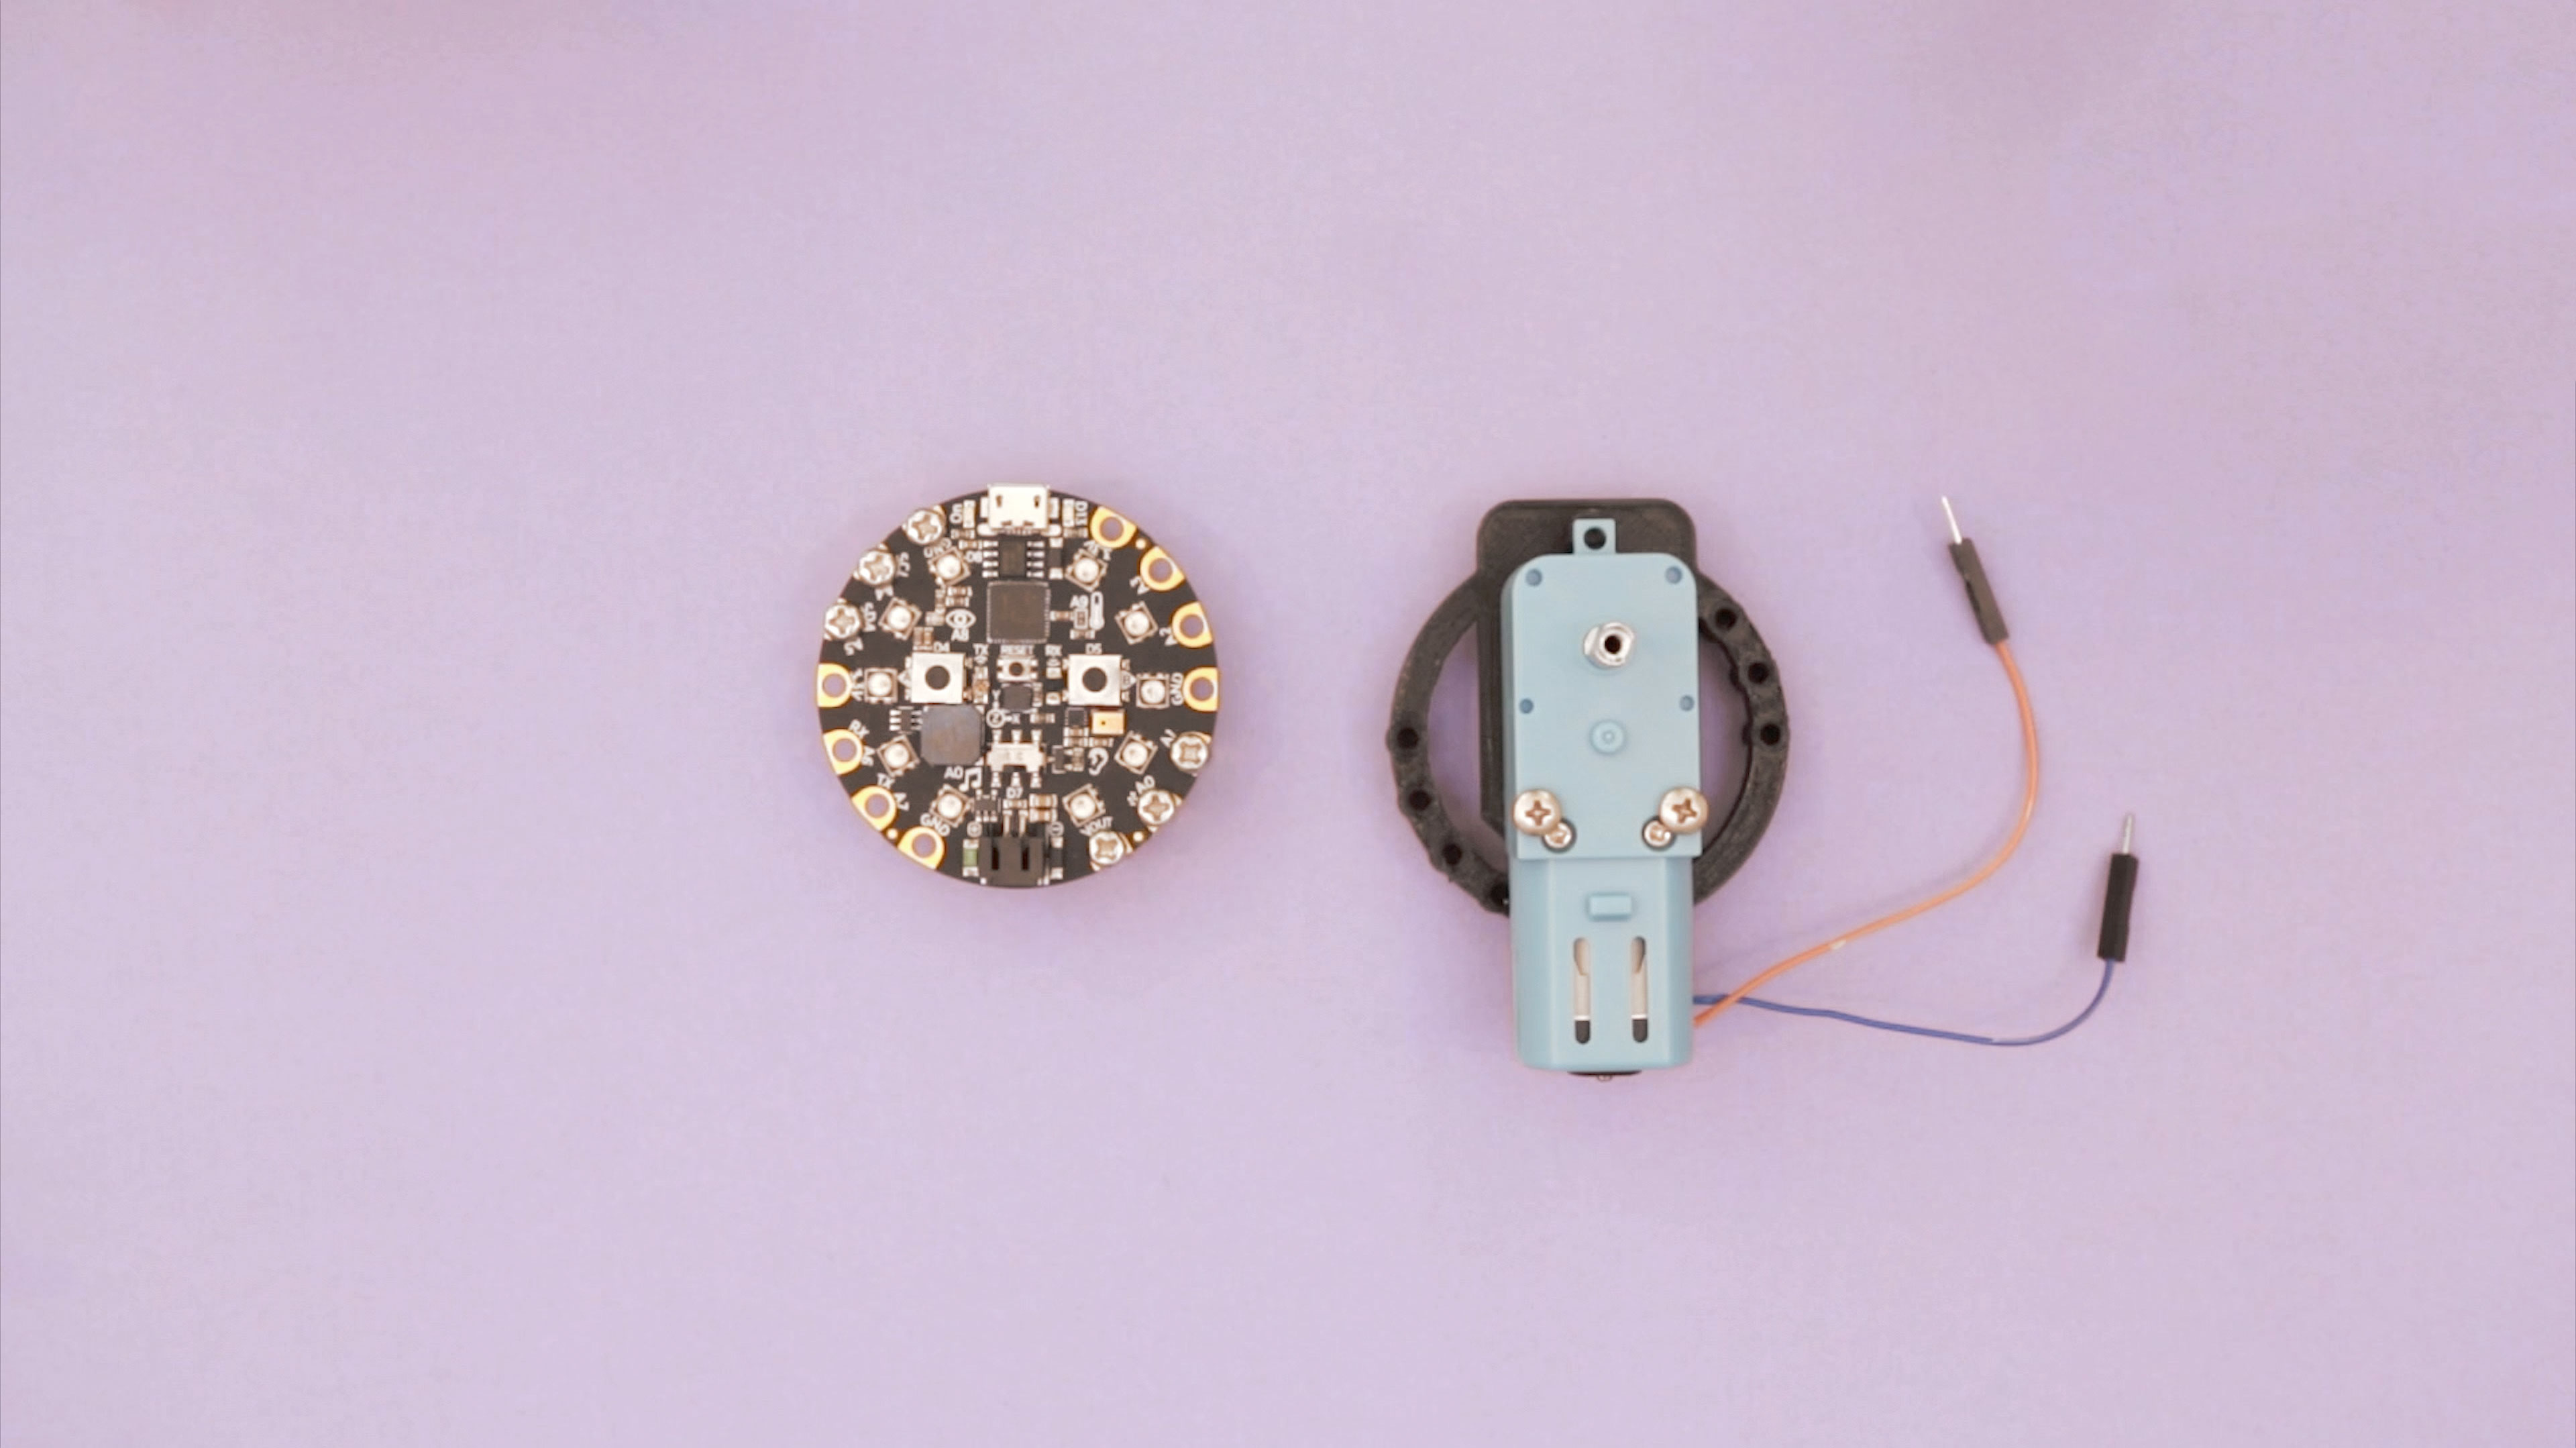 makecode_motor-mounted-cpx.jpg